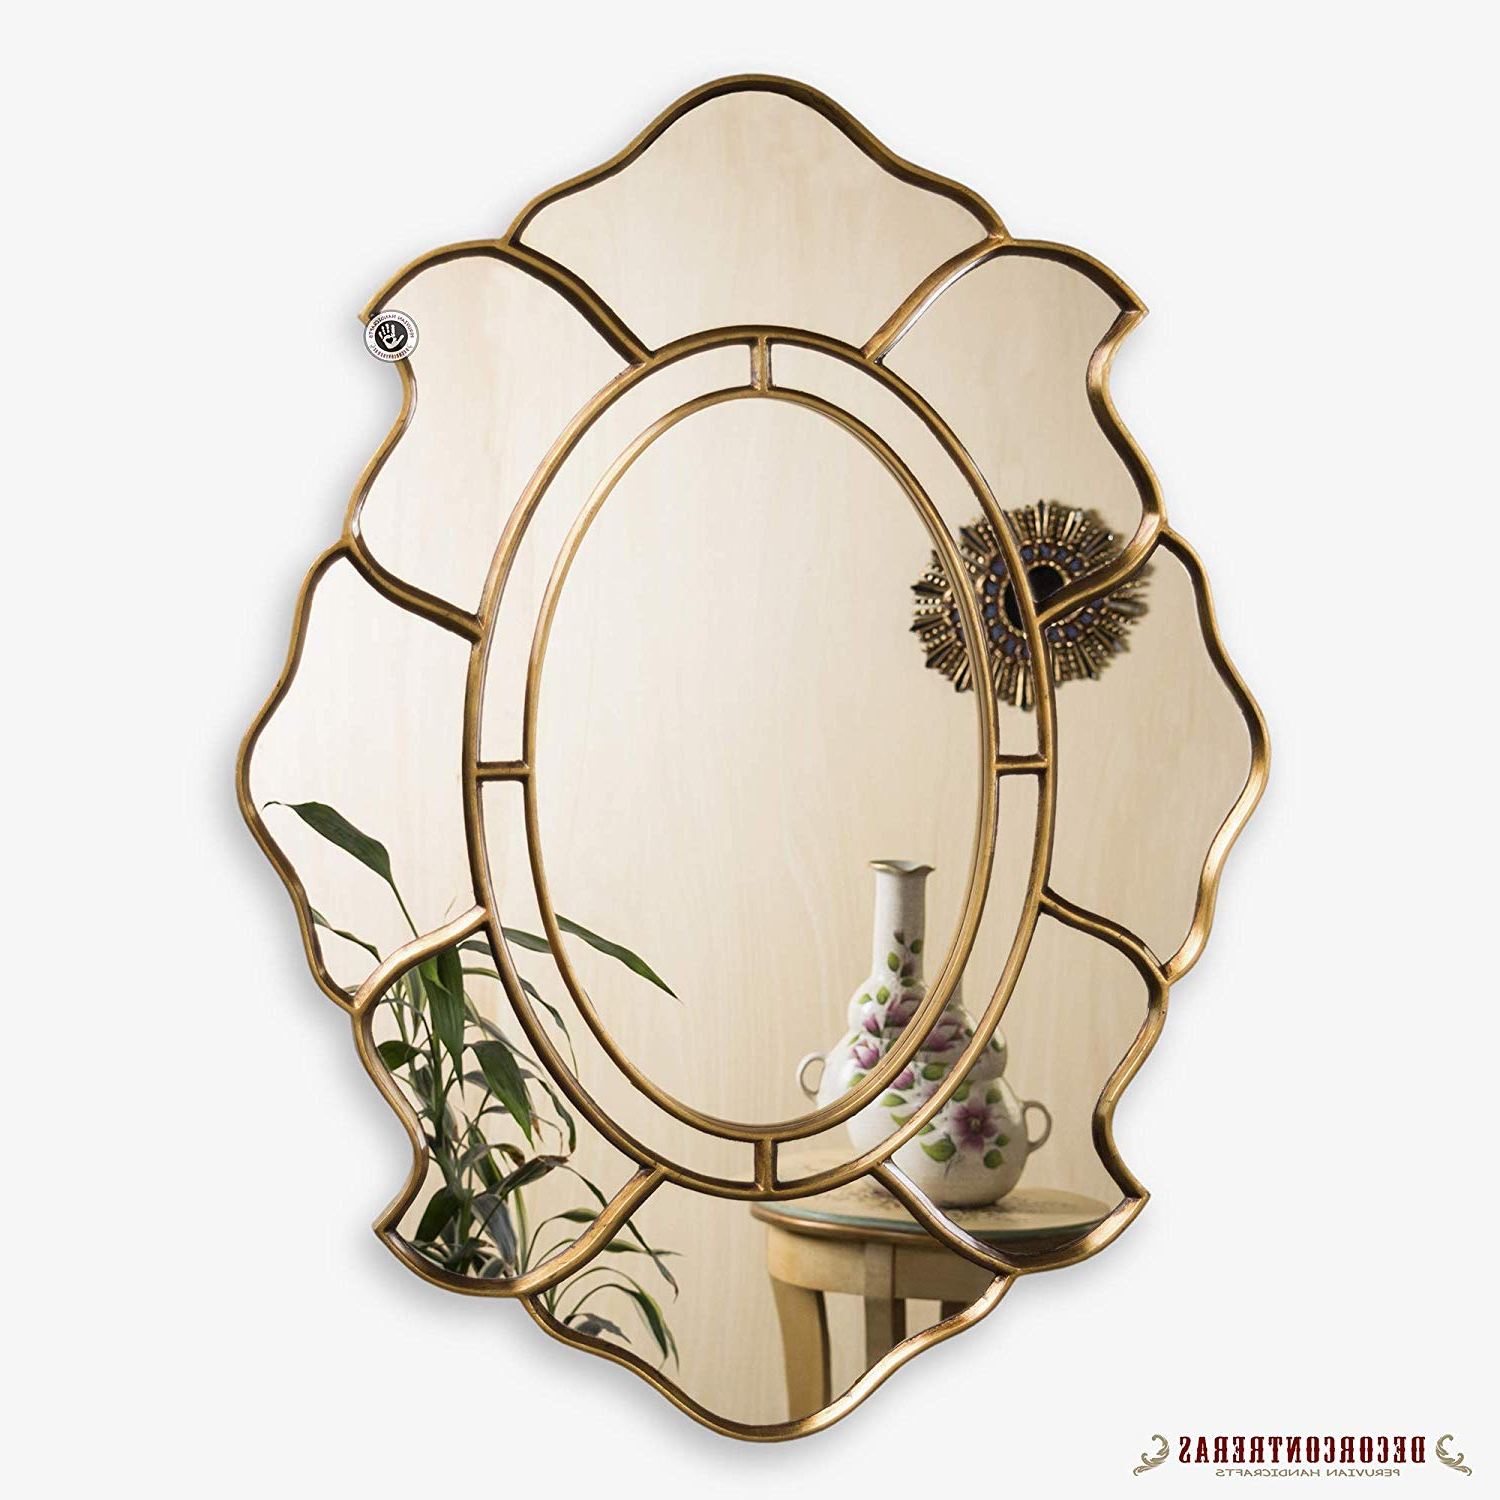 Most Recent Amazon: Gold Oval Accent Wall Mirror, Decorative Oval Mirror For Within Oval Wood Wall Mirrors (View 6 of 20)